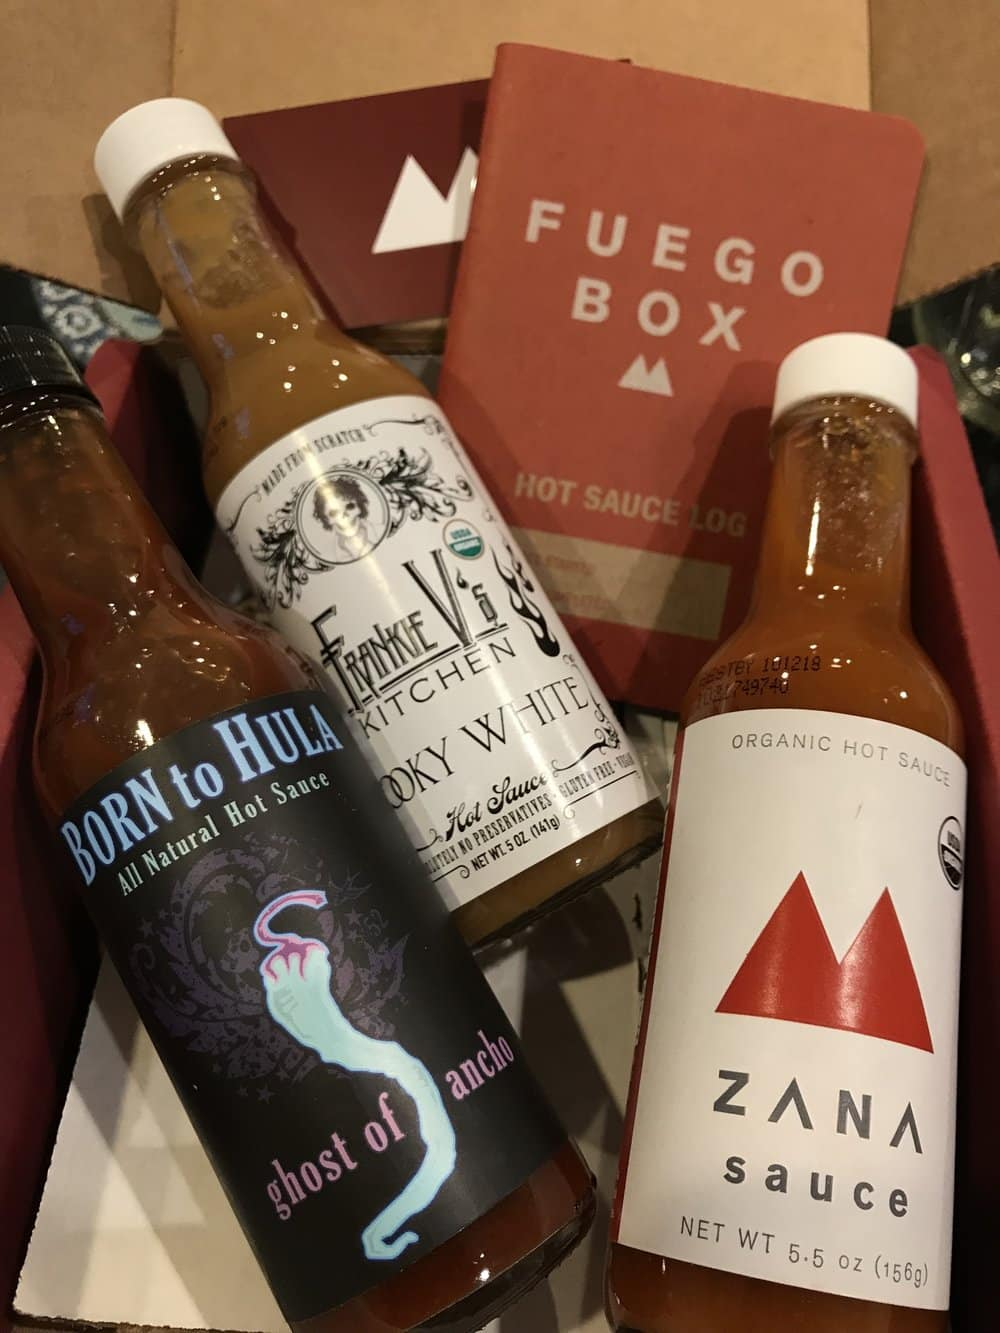 An assortment of three bottles of hot sauce from Fuego Box